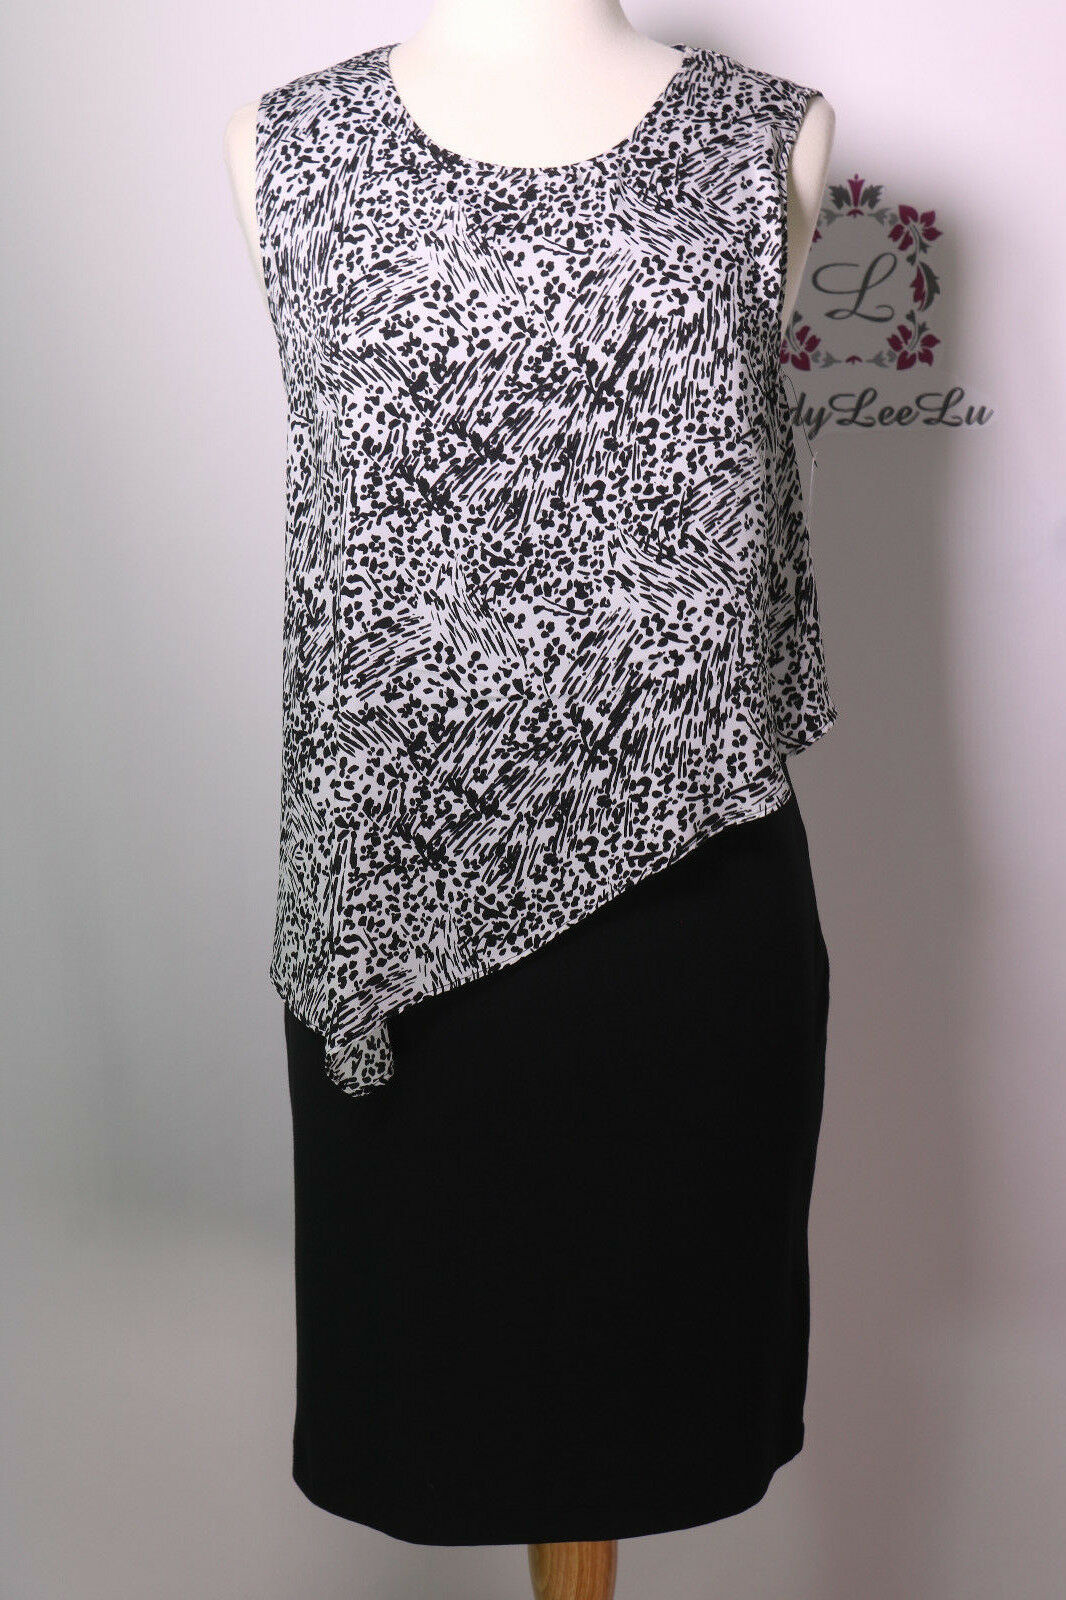 DKNY Light Weight Ponte Dress with Painted Animal Print Overlay Ivory Size M New